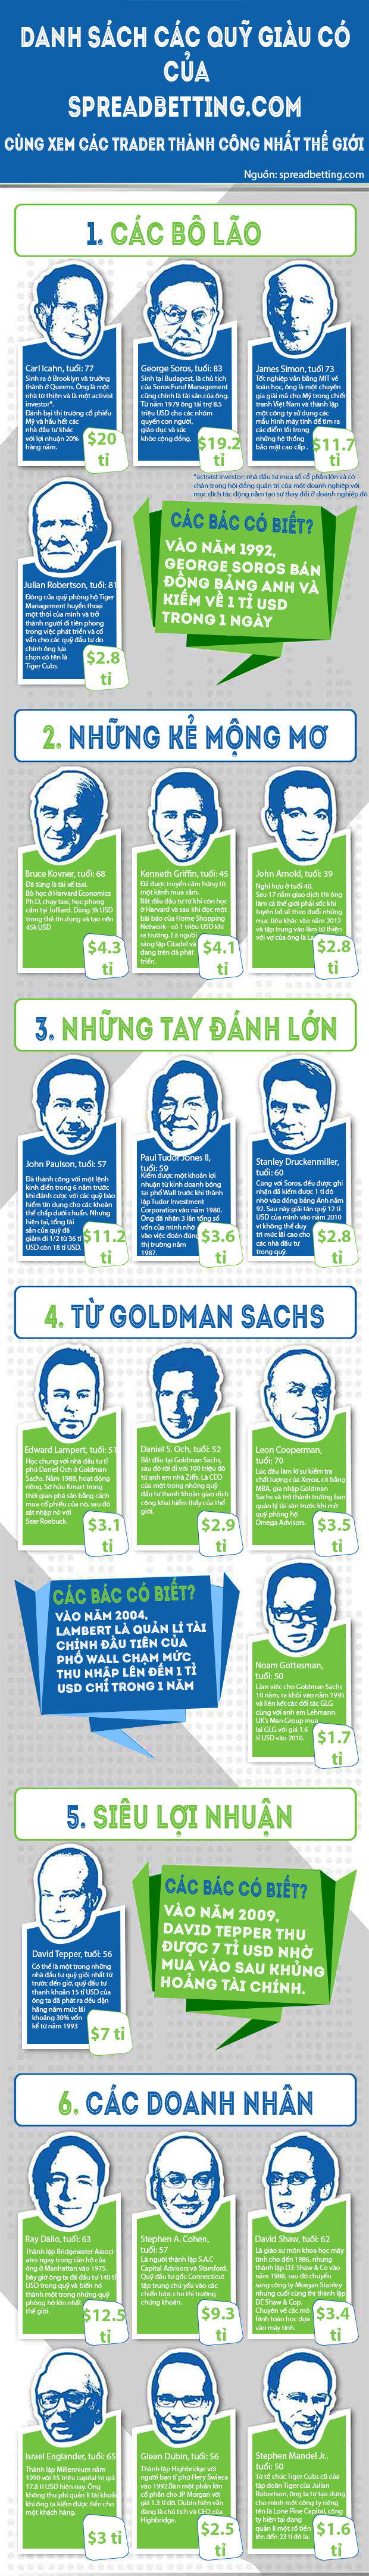 forexinfographic.